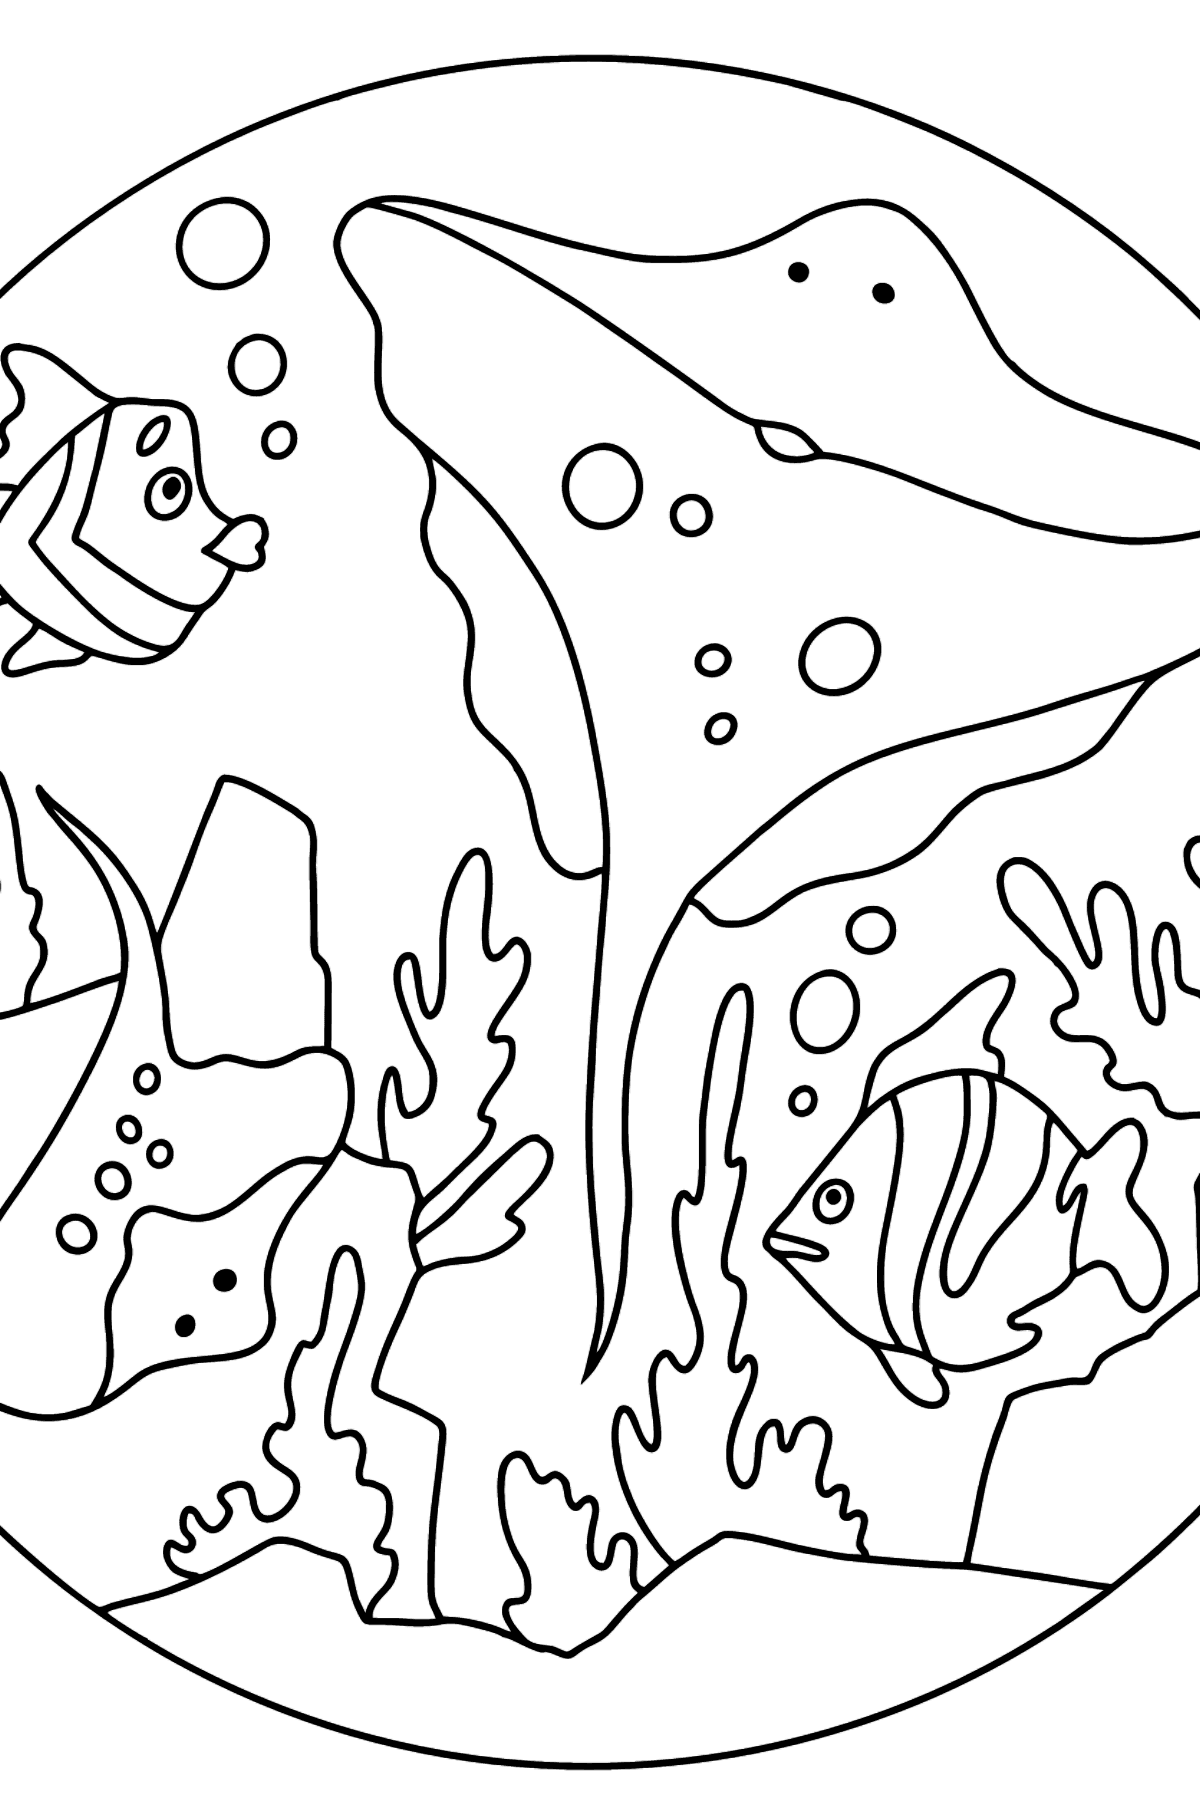 Coloring Page - Fish and Ray are Playing - Coloring Pages for Kids